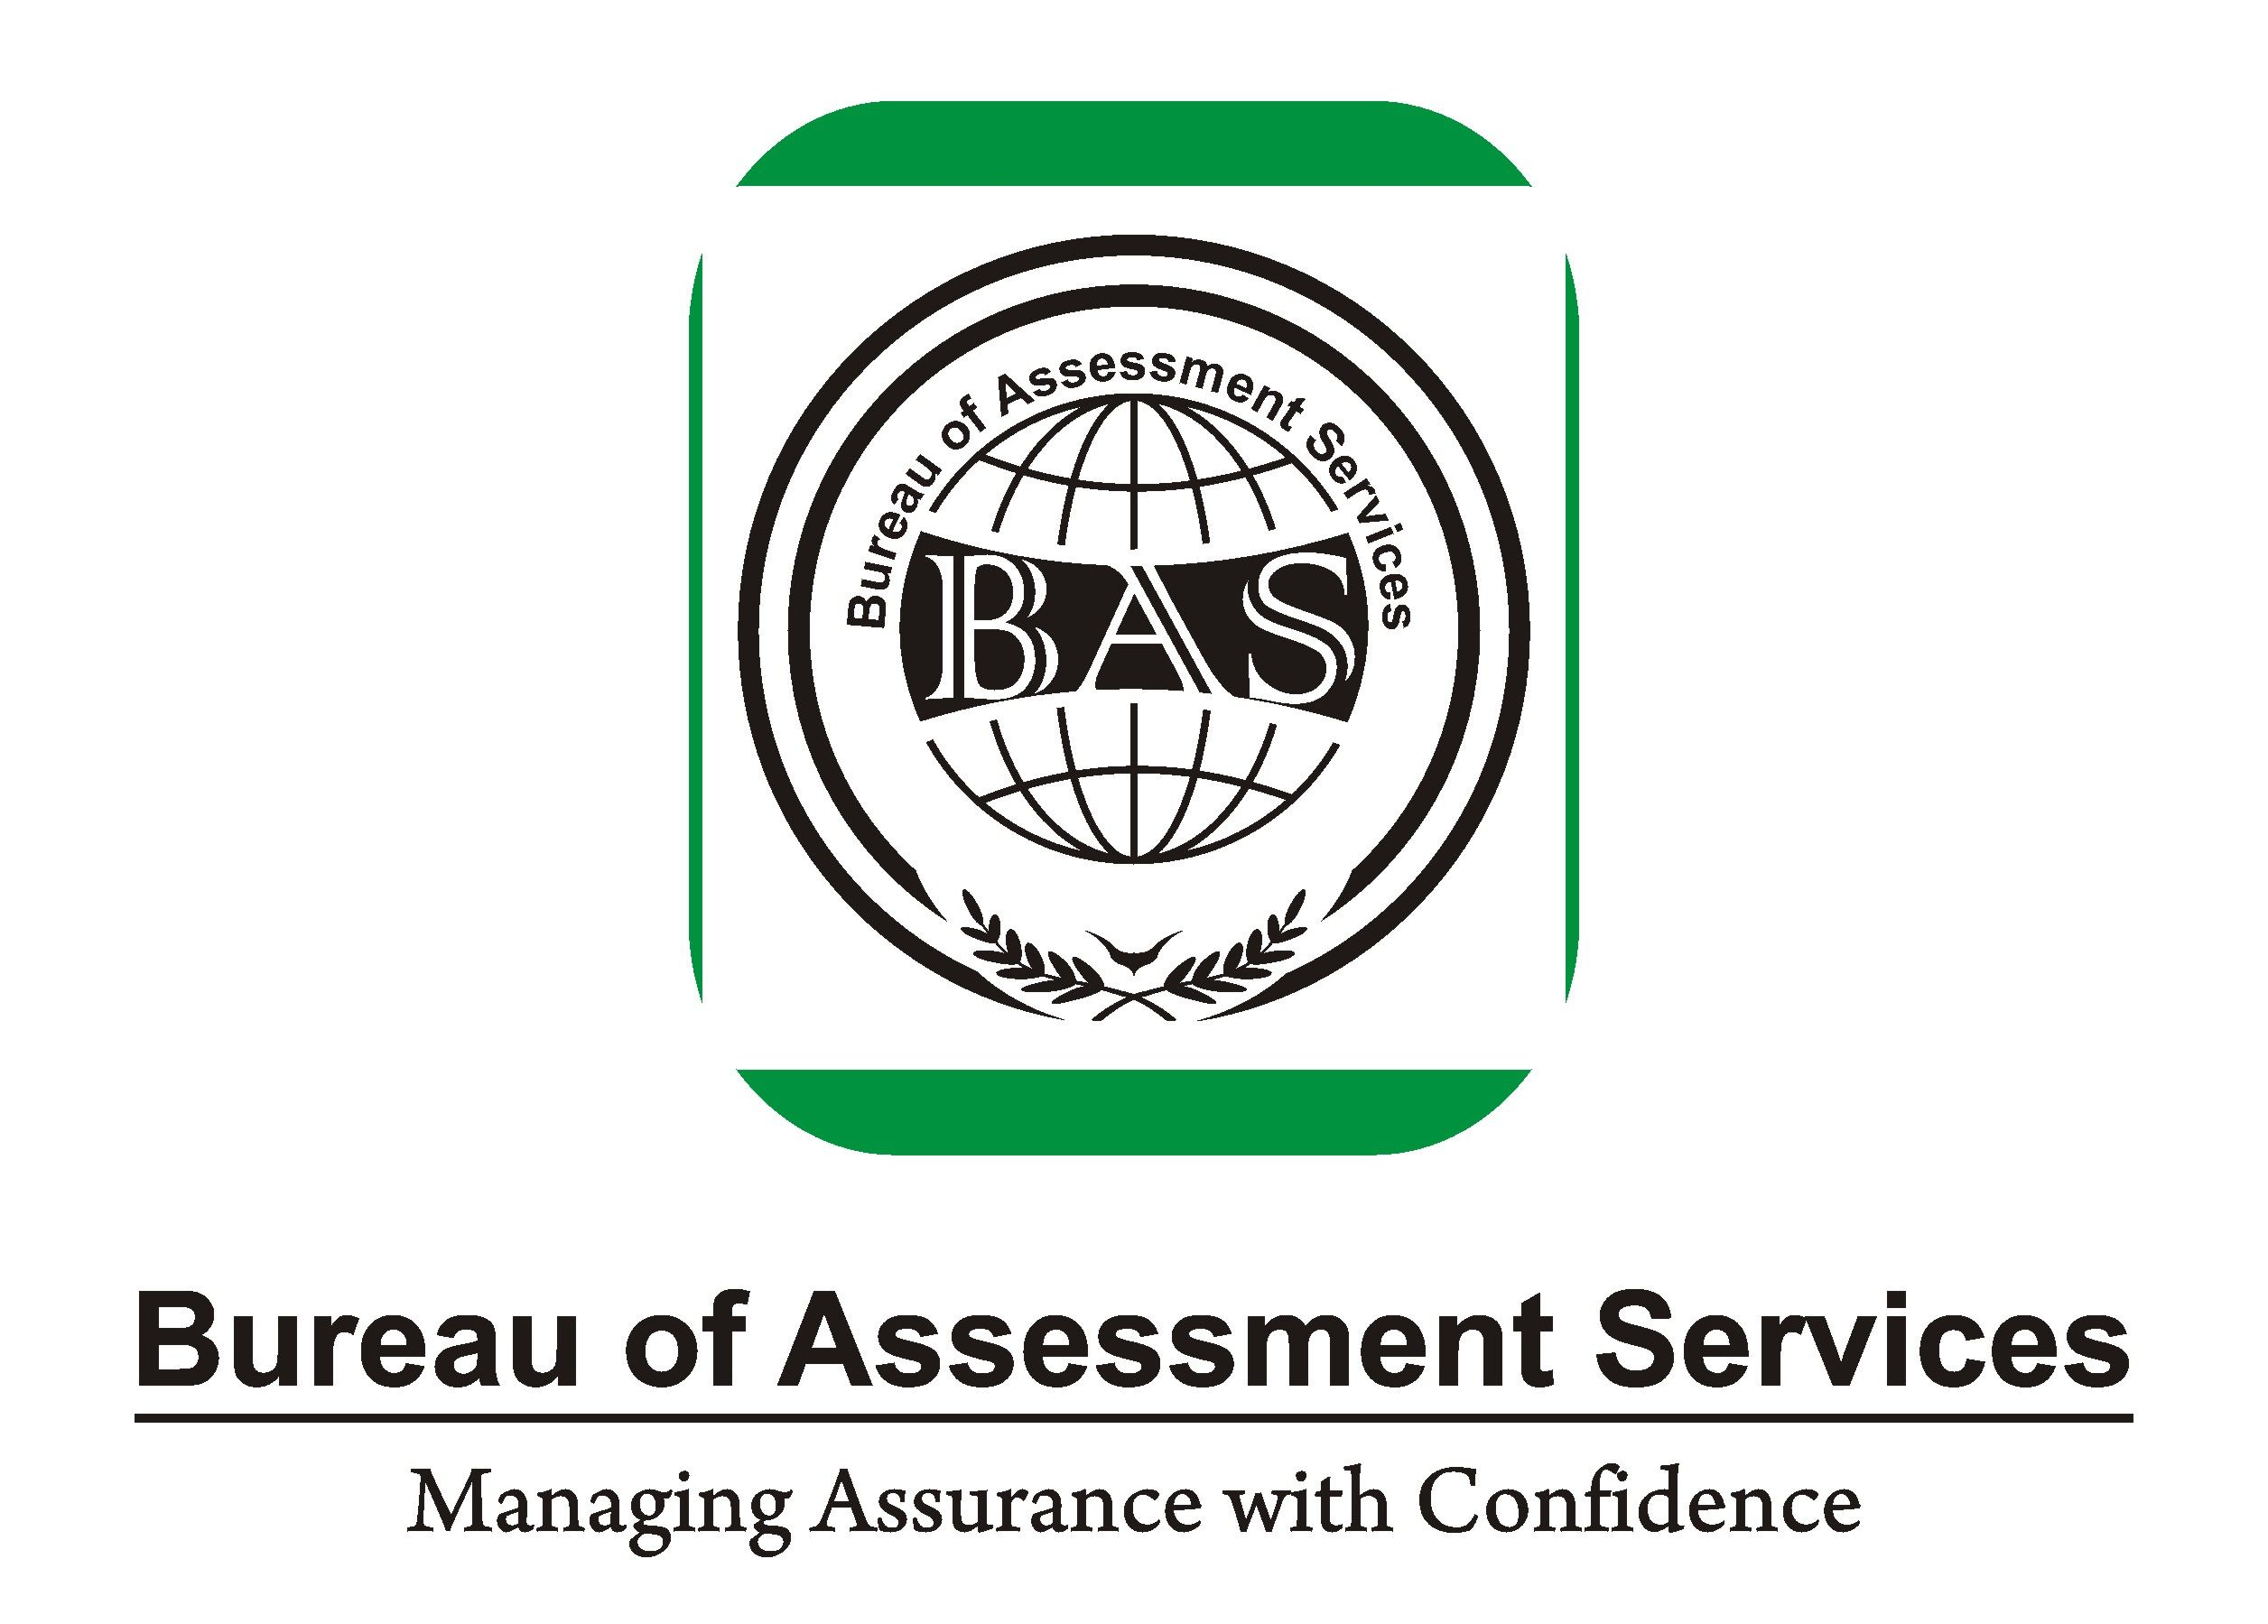 Managing Assurance with Confidence